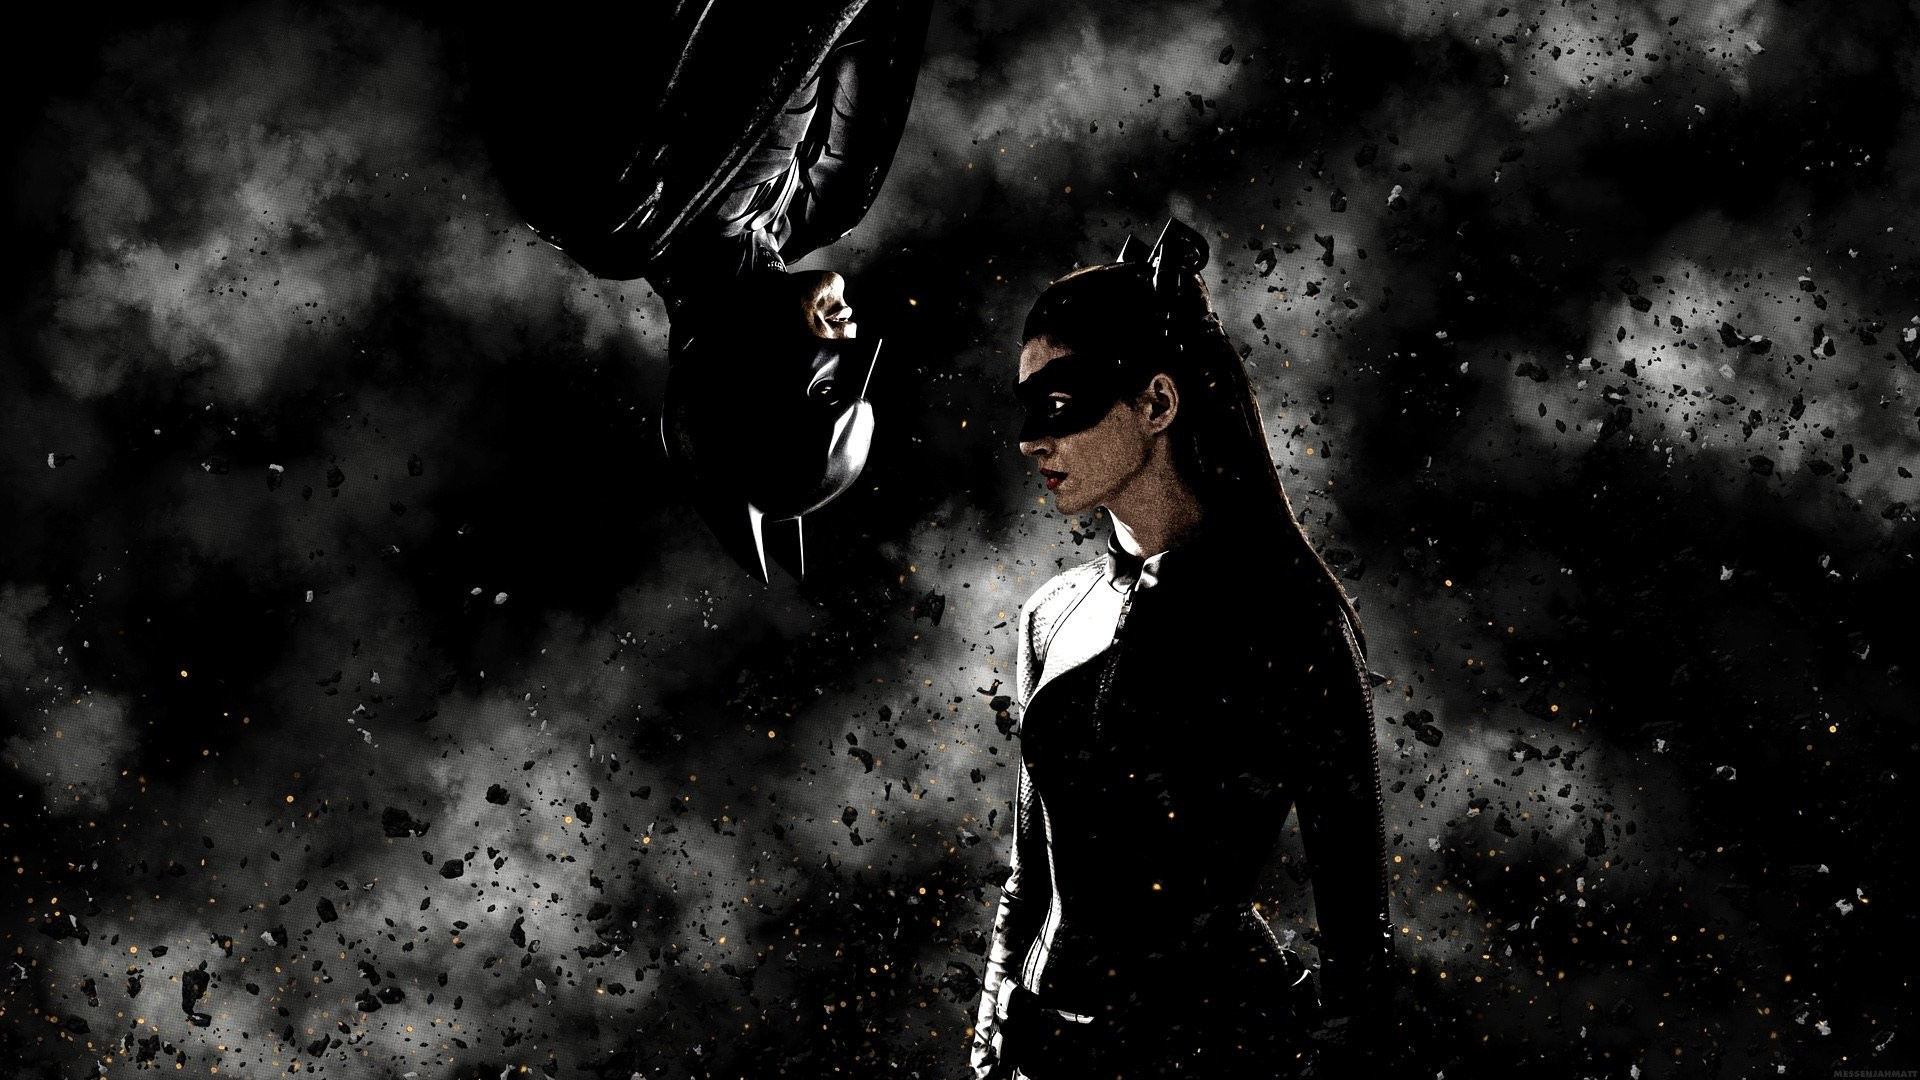 1920x1080 Movies The Dark Knight Rises Batman Wallpapers HD Desktop And Mobile Backgrounds